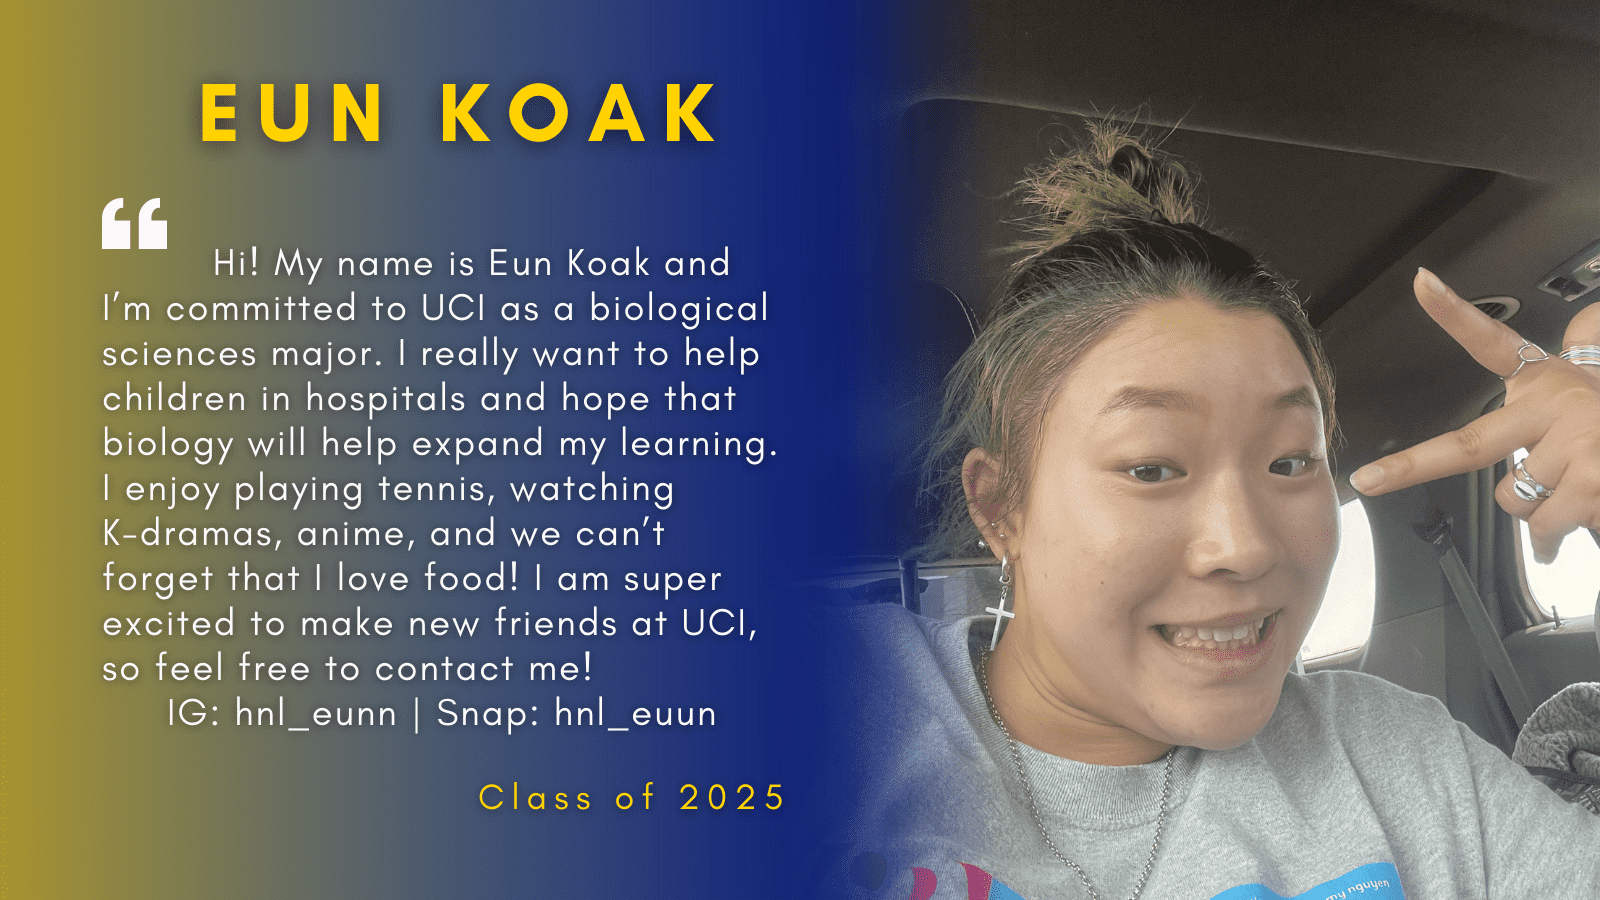 Image of Eun Koak with her quote.